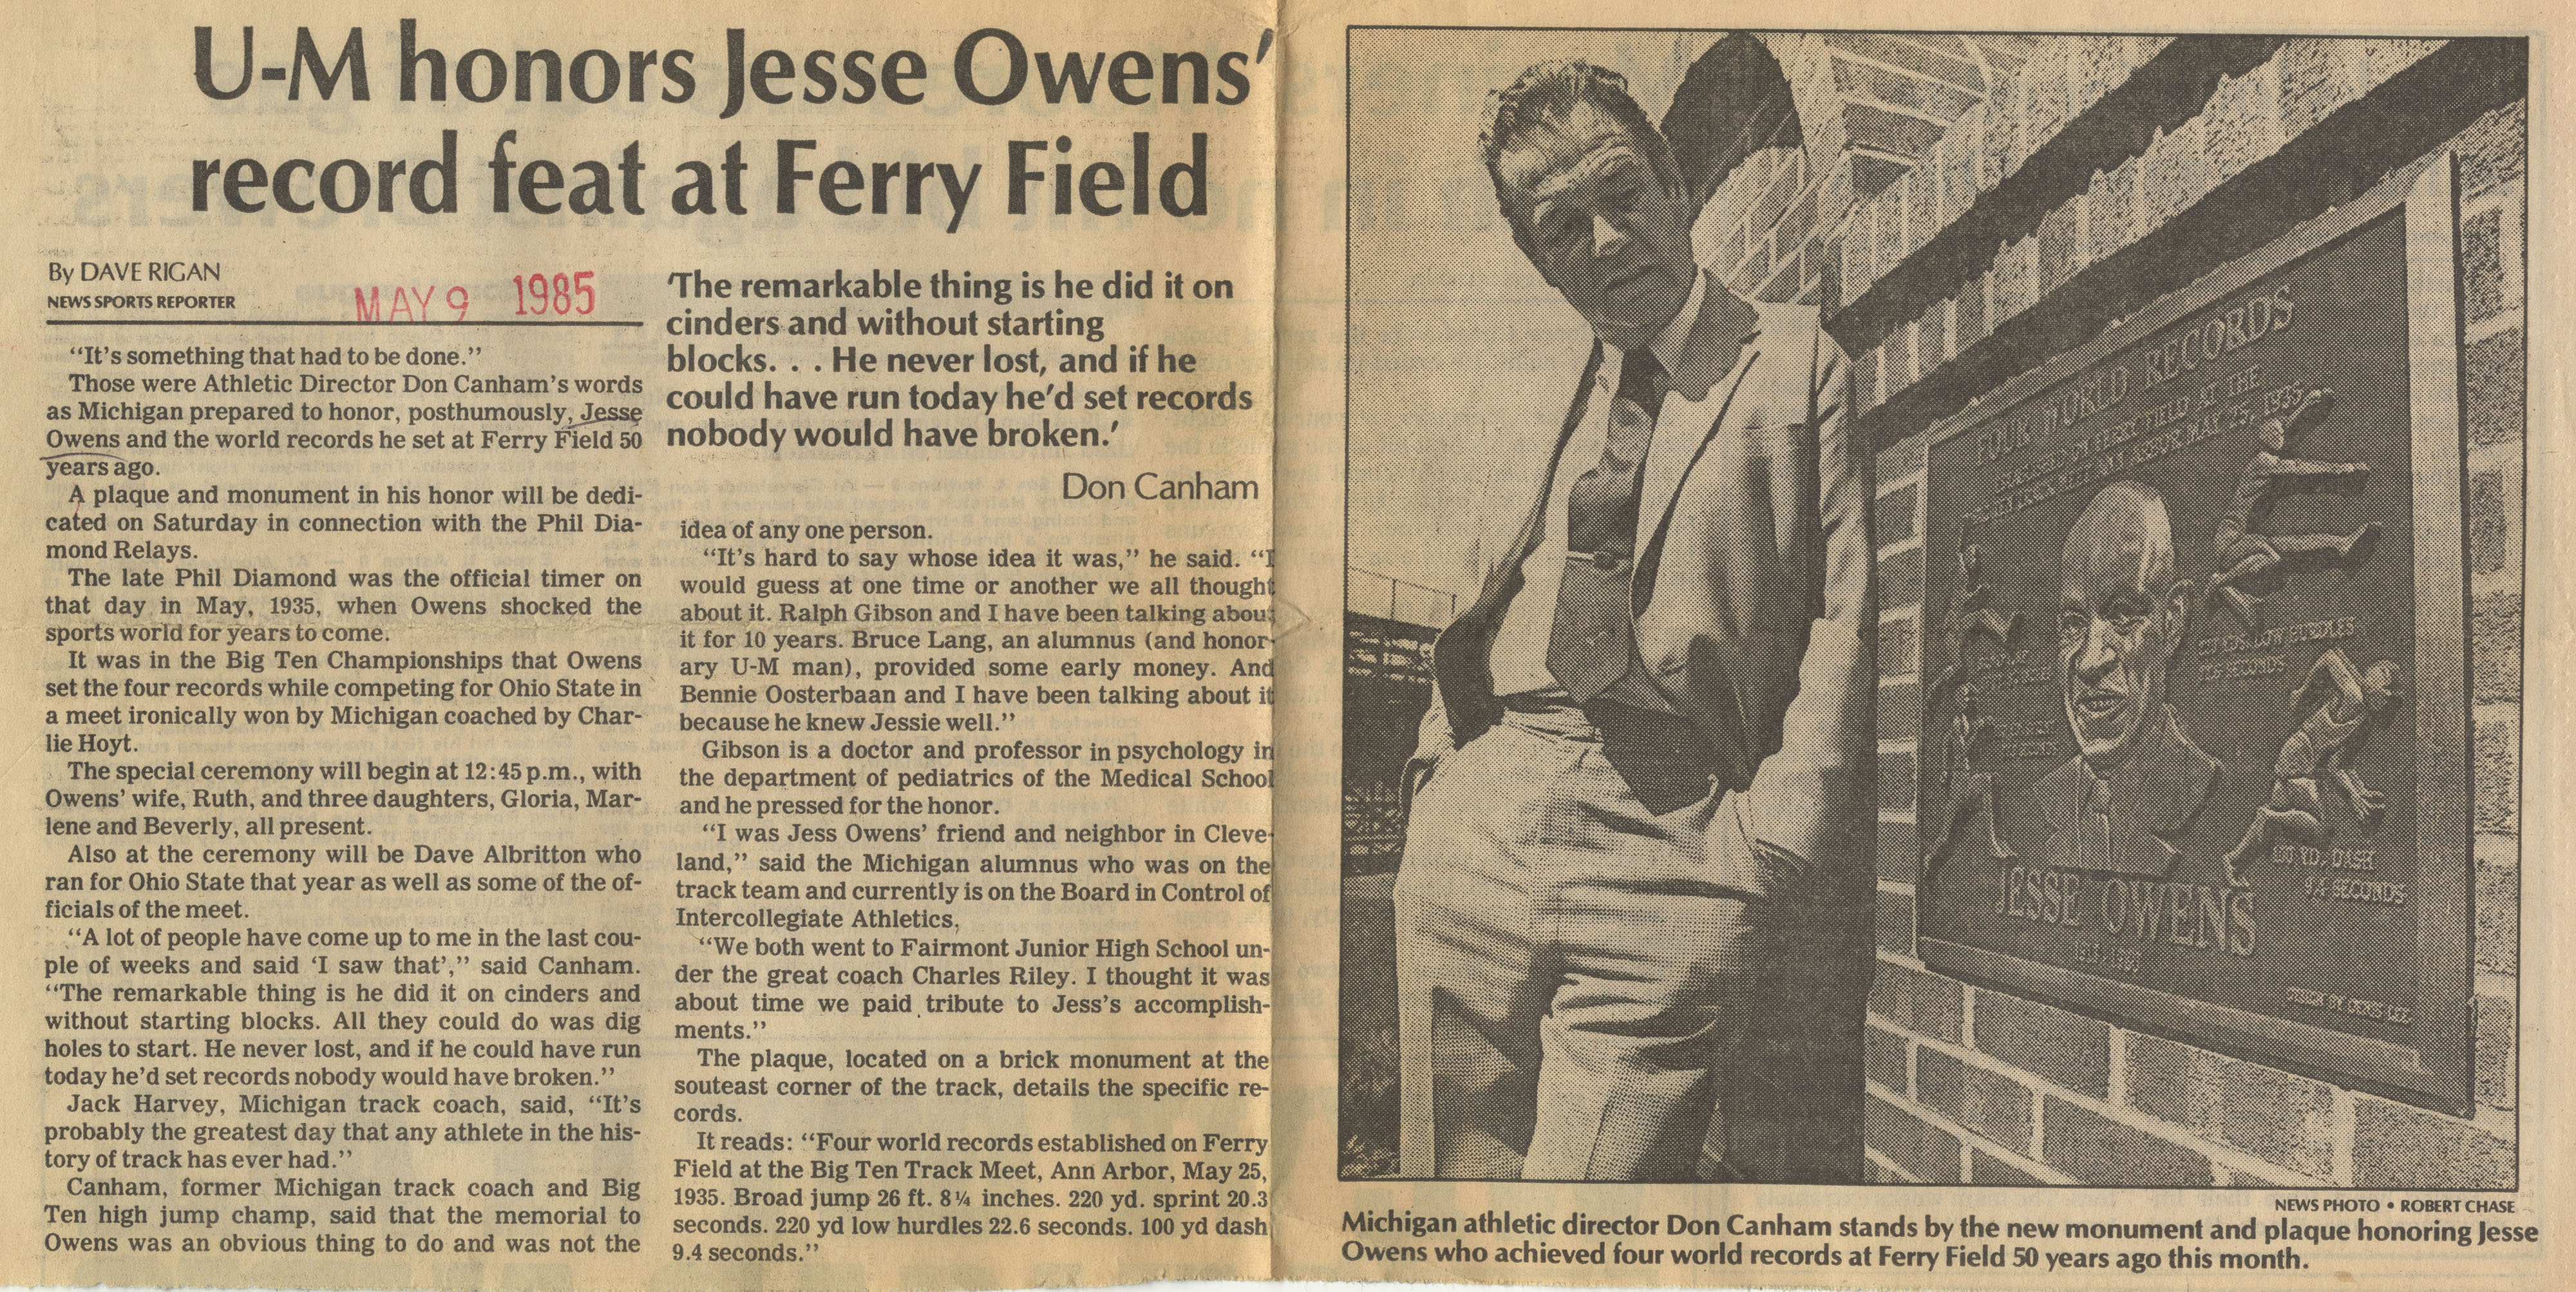 U-M honors Jessie Owens' record feat at Ferry Field image